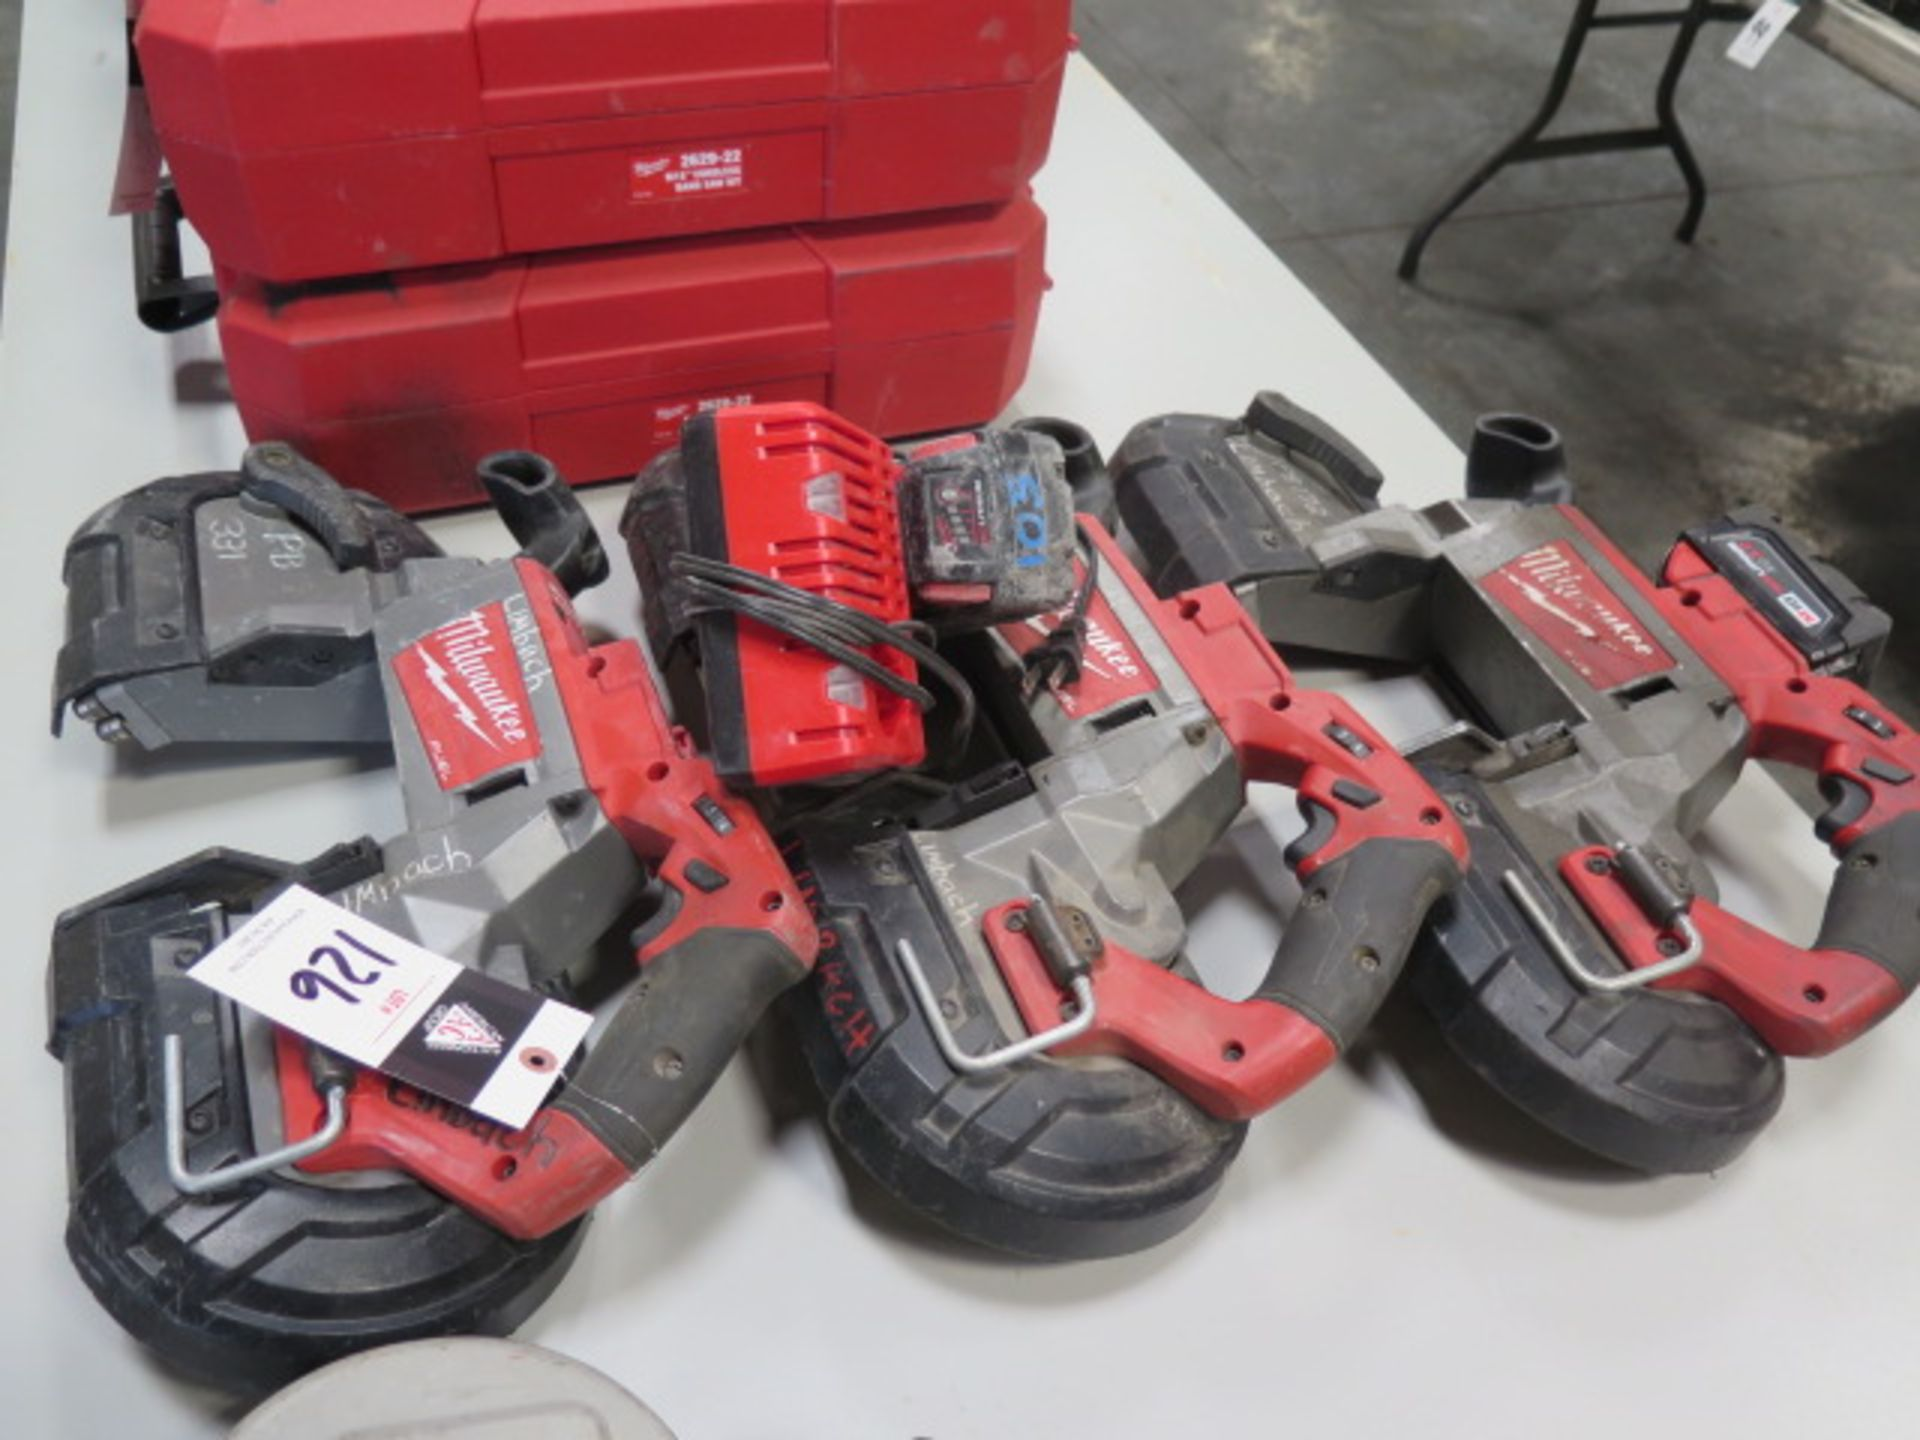 Milwaukee 18 Volt Portable Band Saws (3) (SOLD AS-IS - NO WARRANTY) - Image 2 of 7